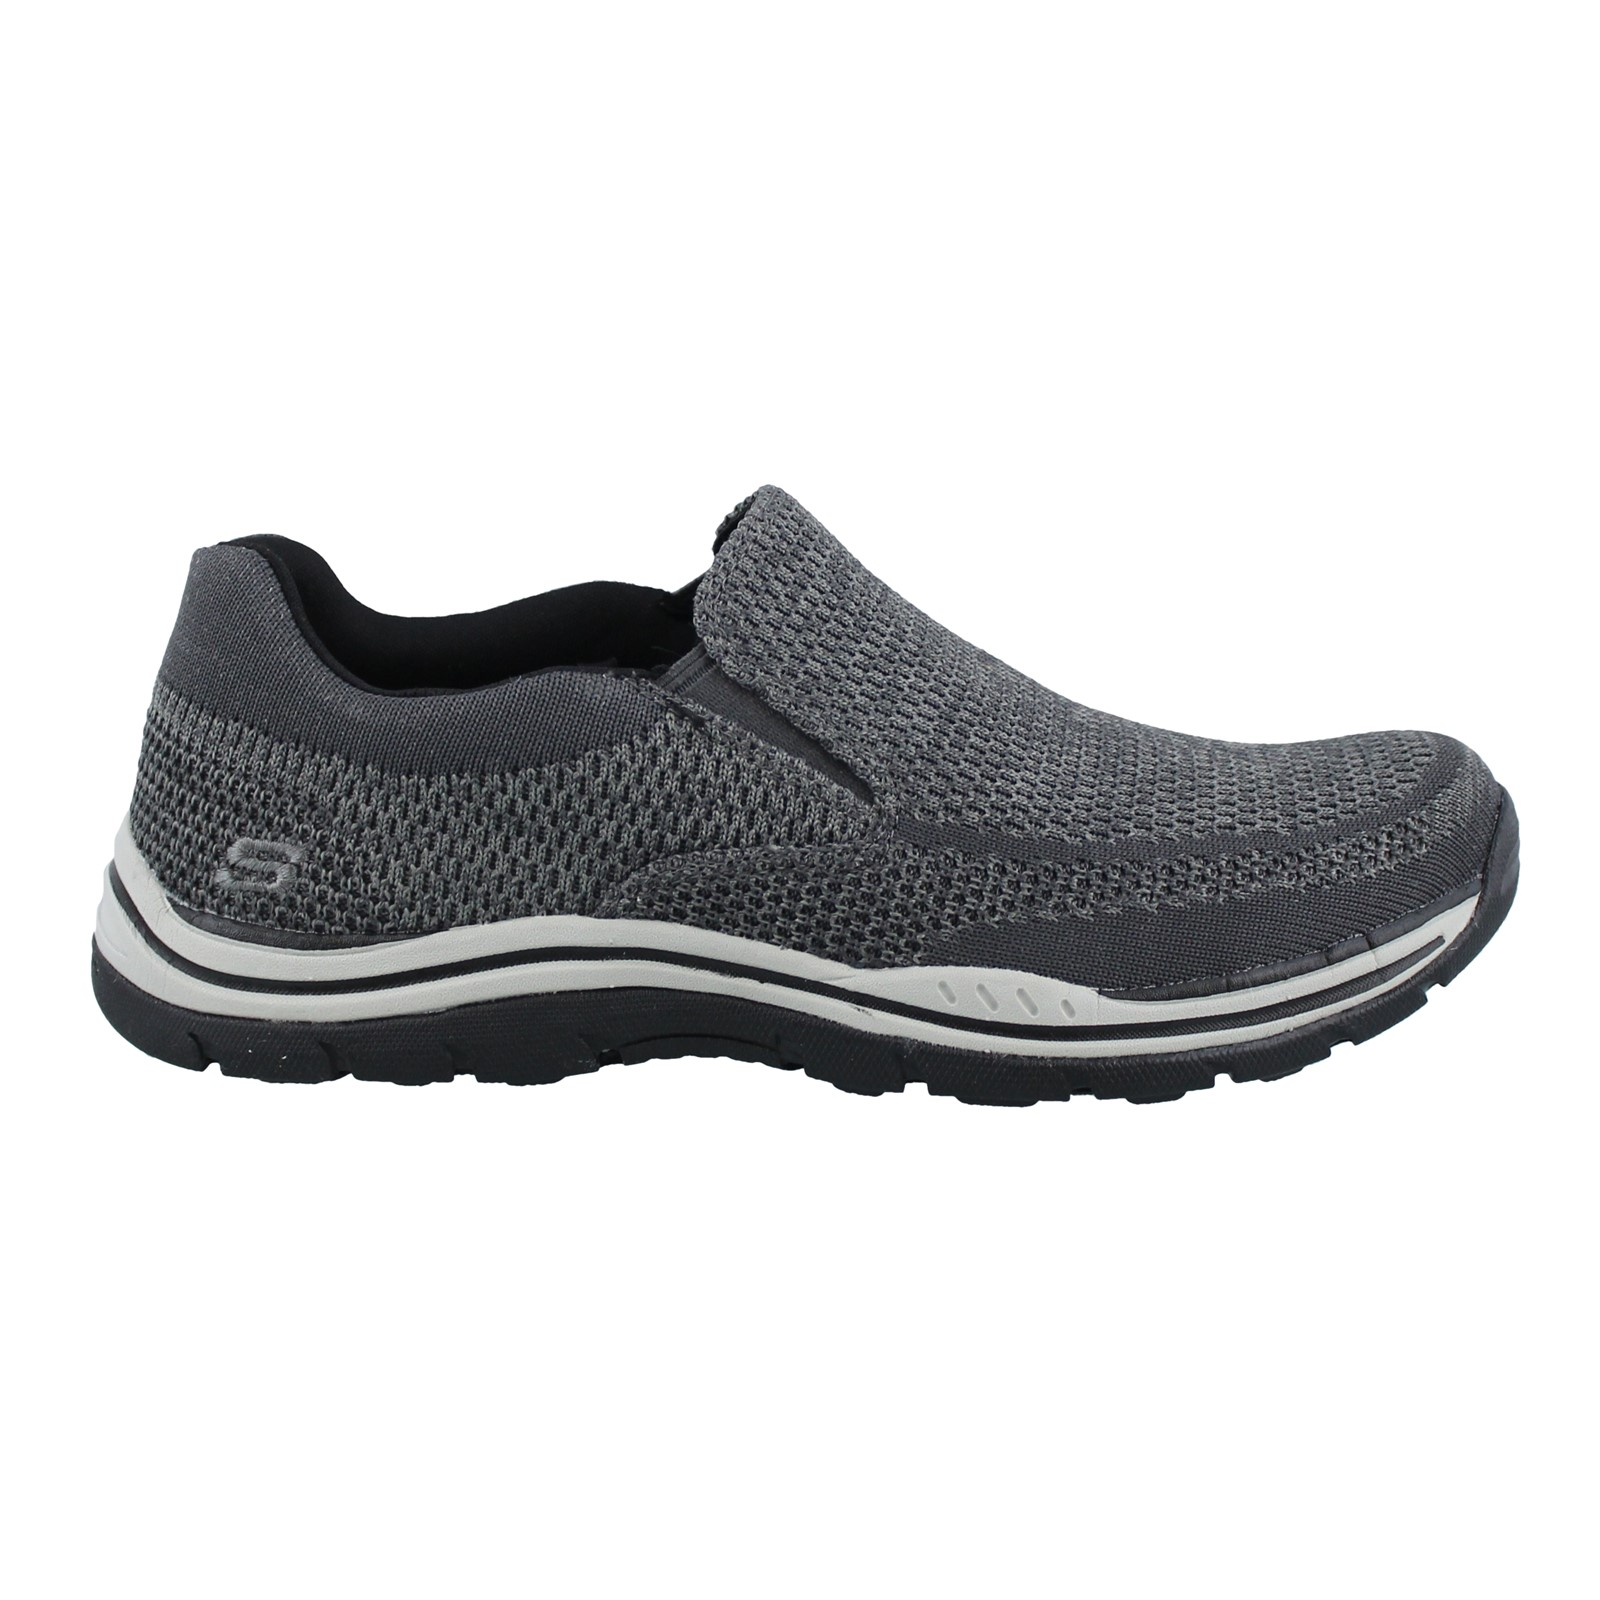 Men's Skechers, Expected Gomel Slip on Shoes